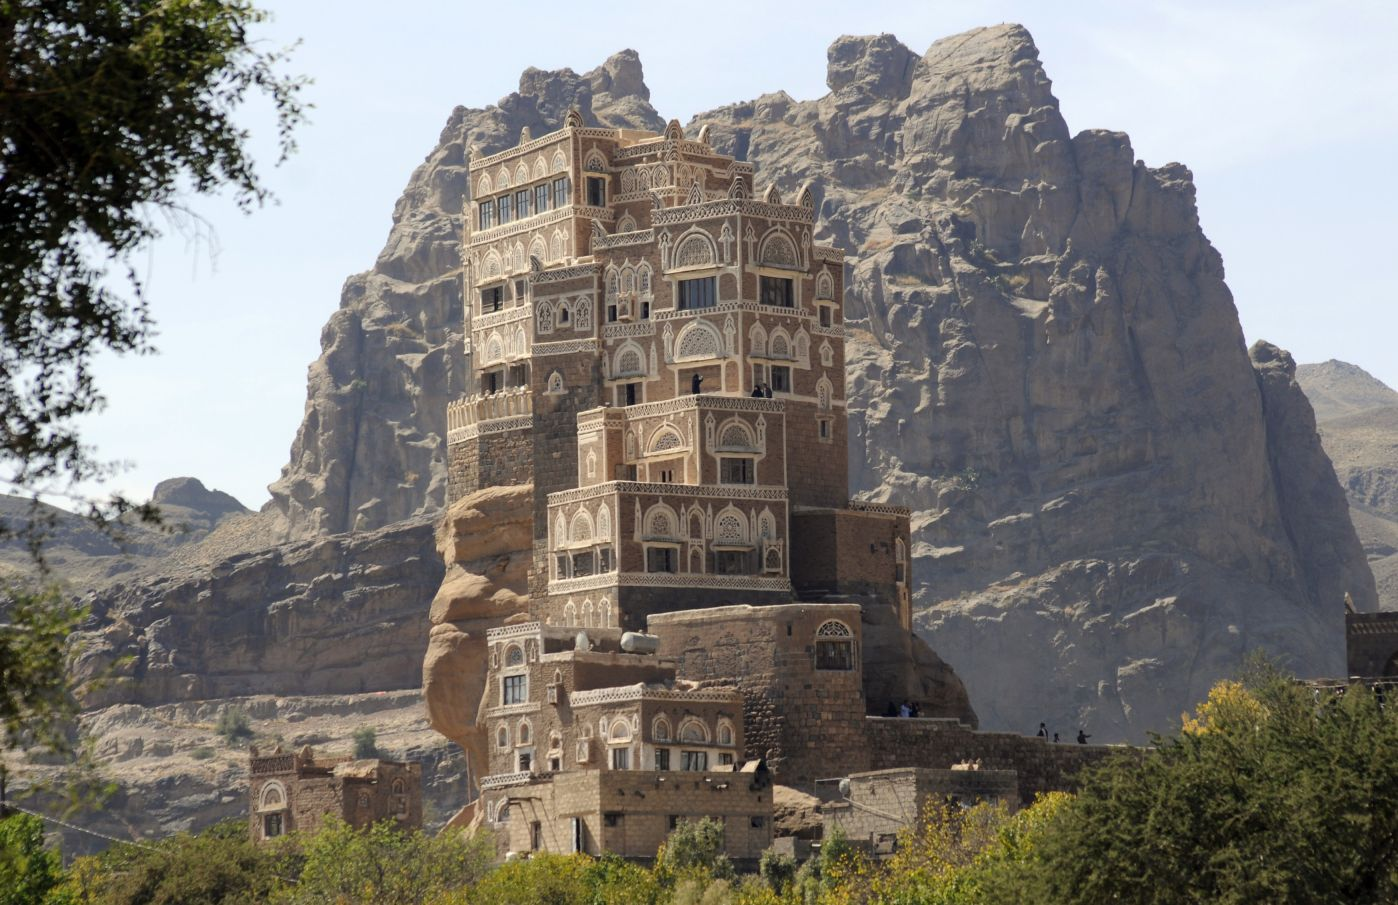 Dar al-hajar, a rock palace built in the 1930s, is seen near Sanaa November 7, 2011. Hundreds of Muslims around the country visit the monument during Eid al-Adha. REUTERS/Mohamed al-Sayaghi (YEMEN - Tags: SOCIETY)